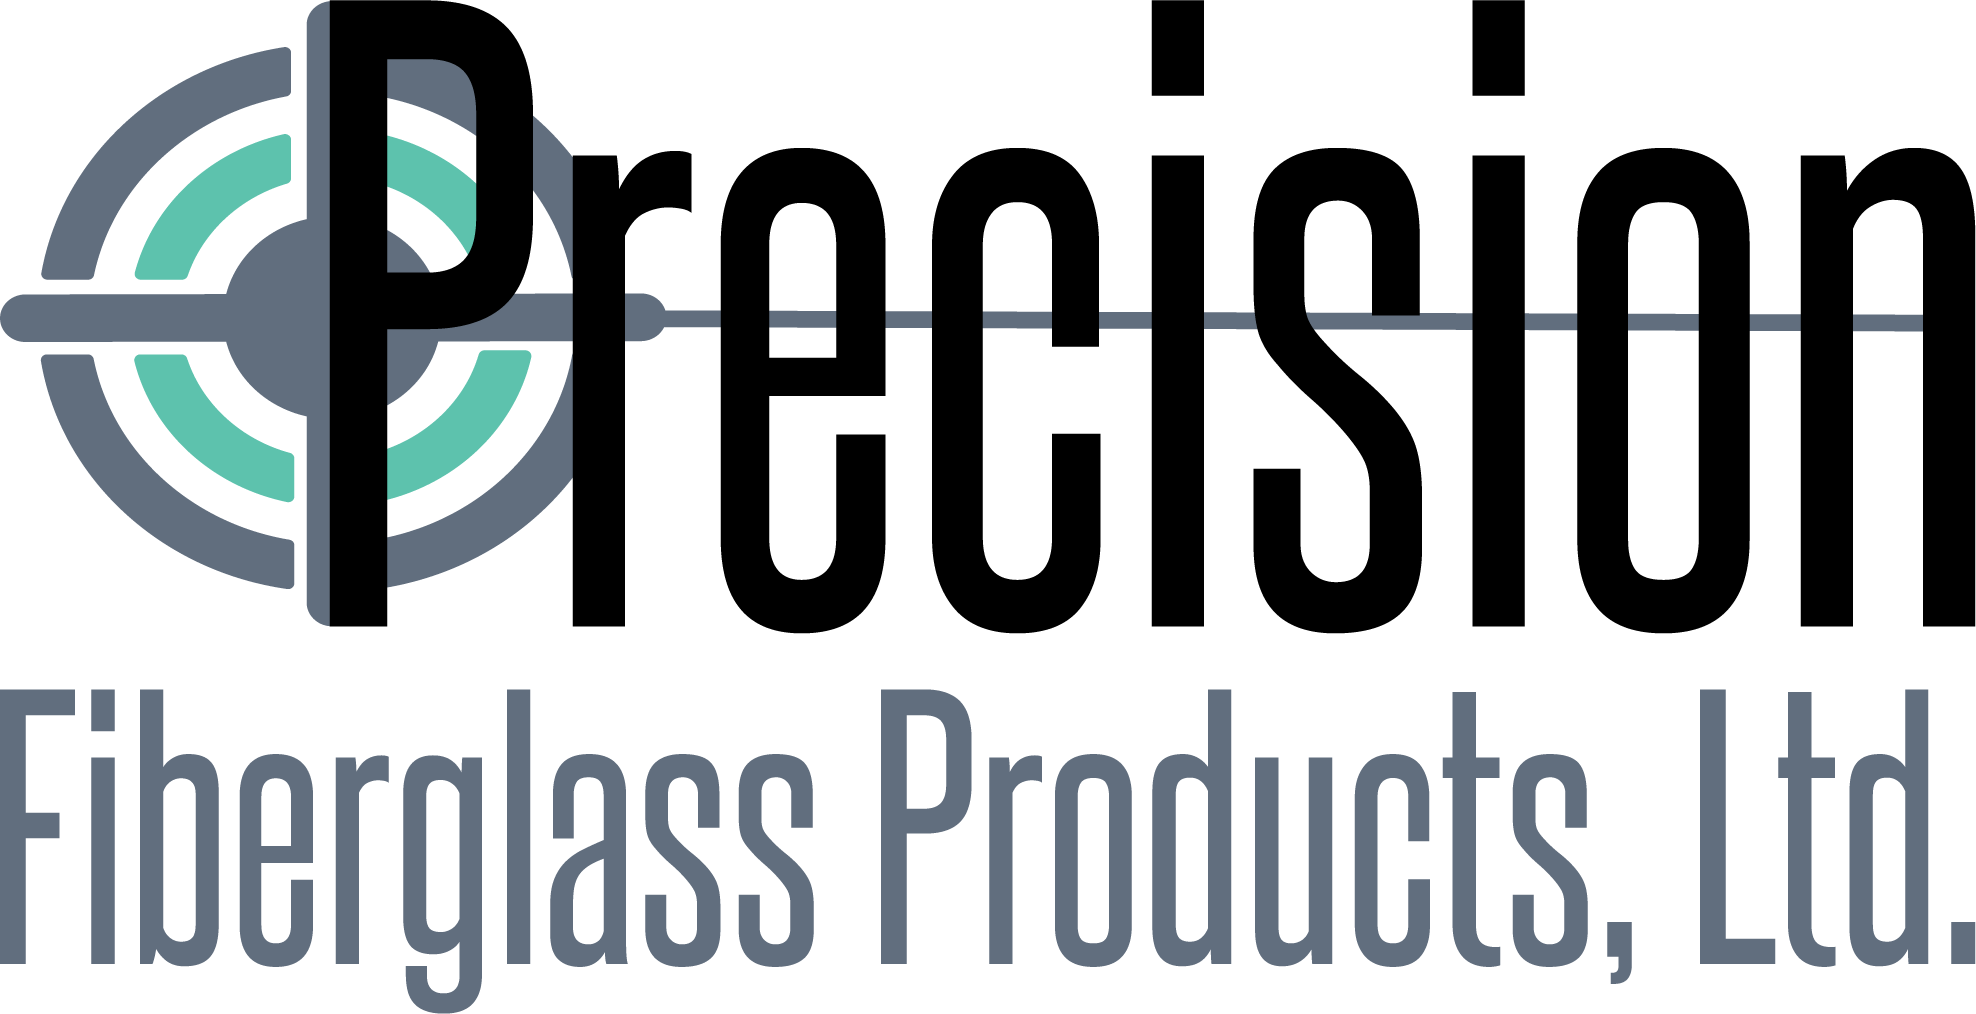 Precision Fiberglass Products, Ltd. logo.